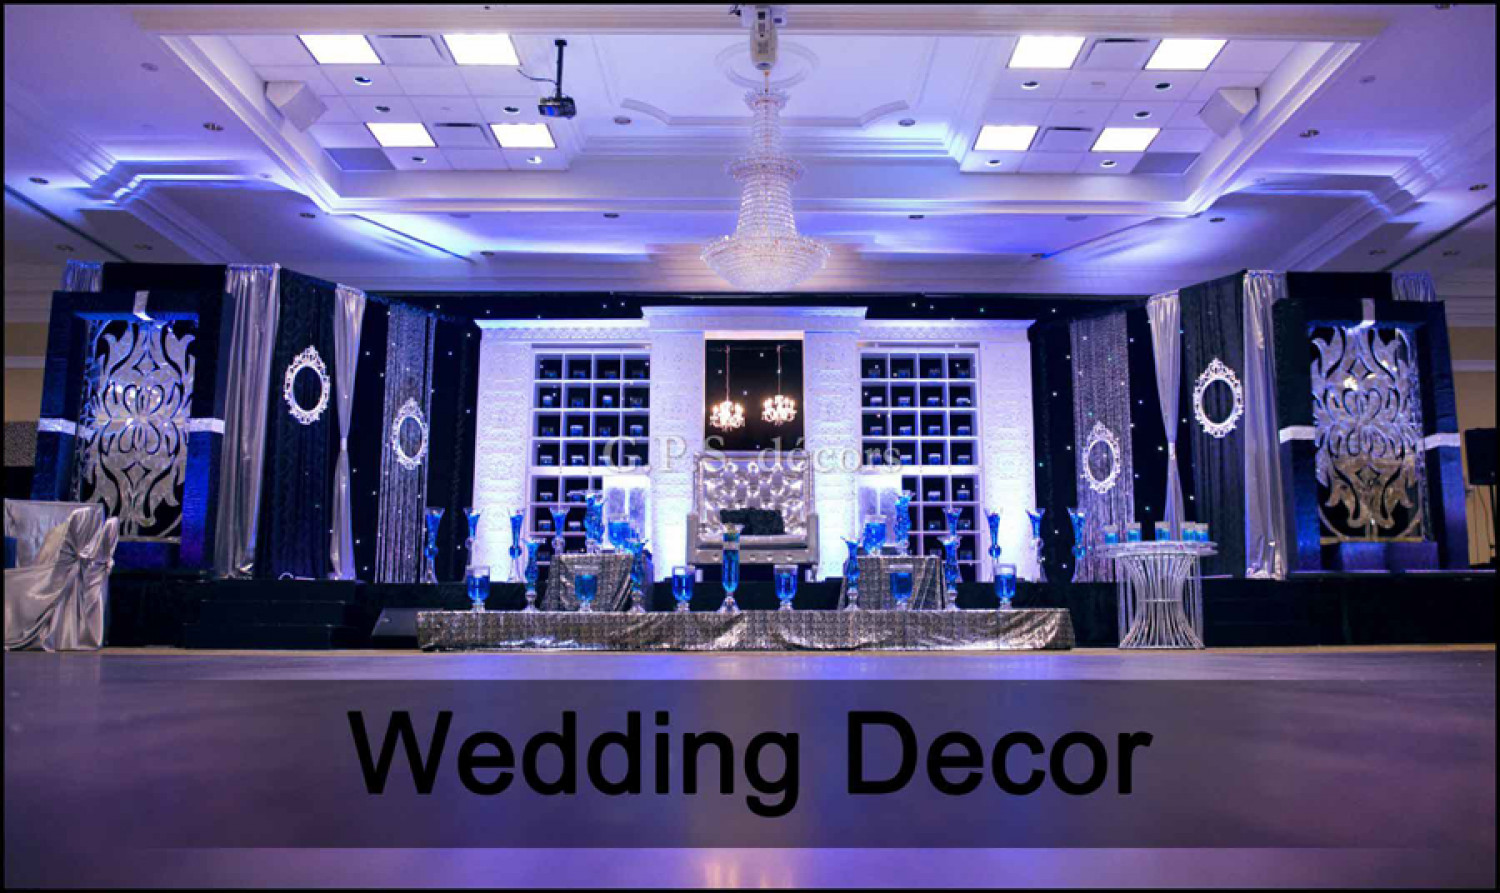 gps decors wedding decorators toronto wedding decor brampton event decor mississauga